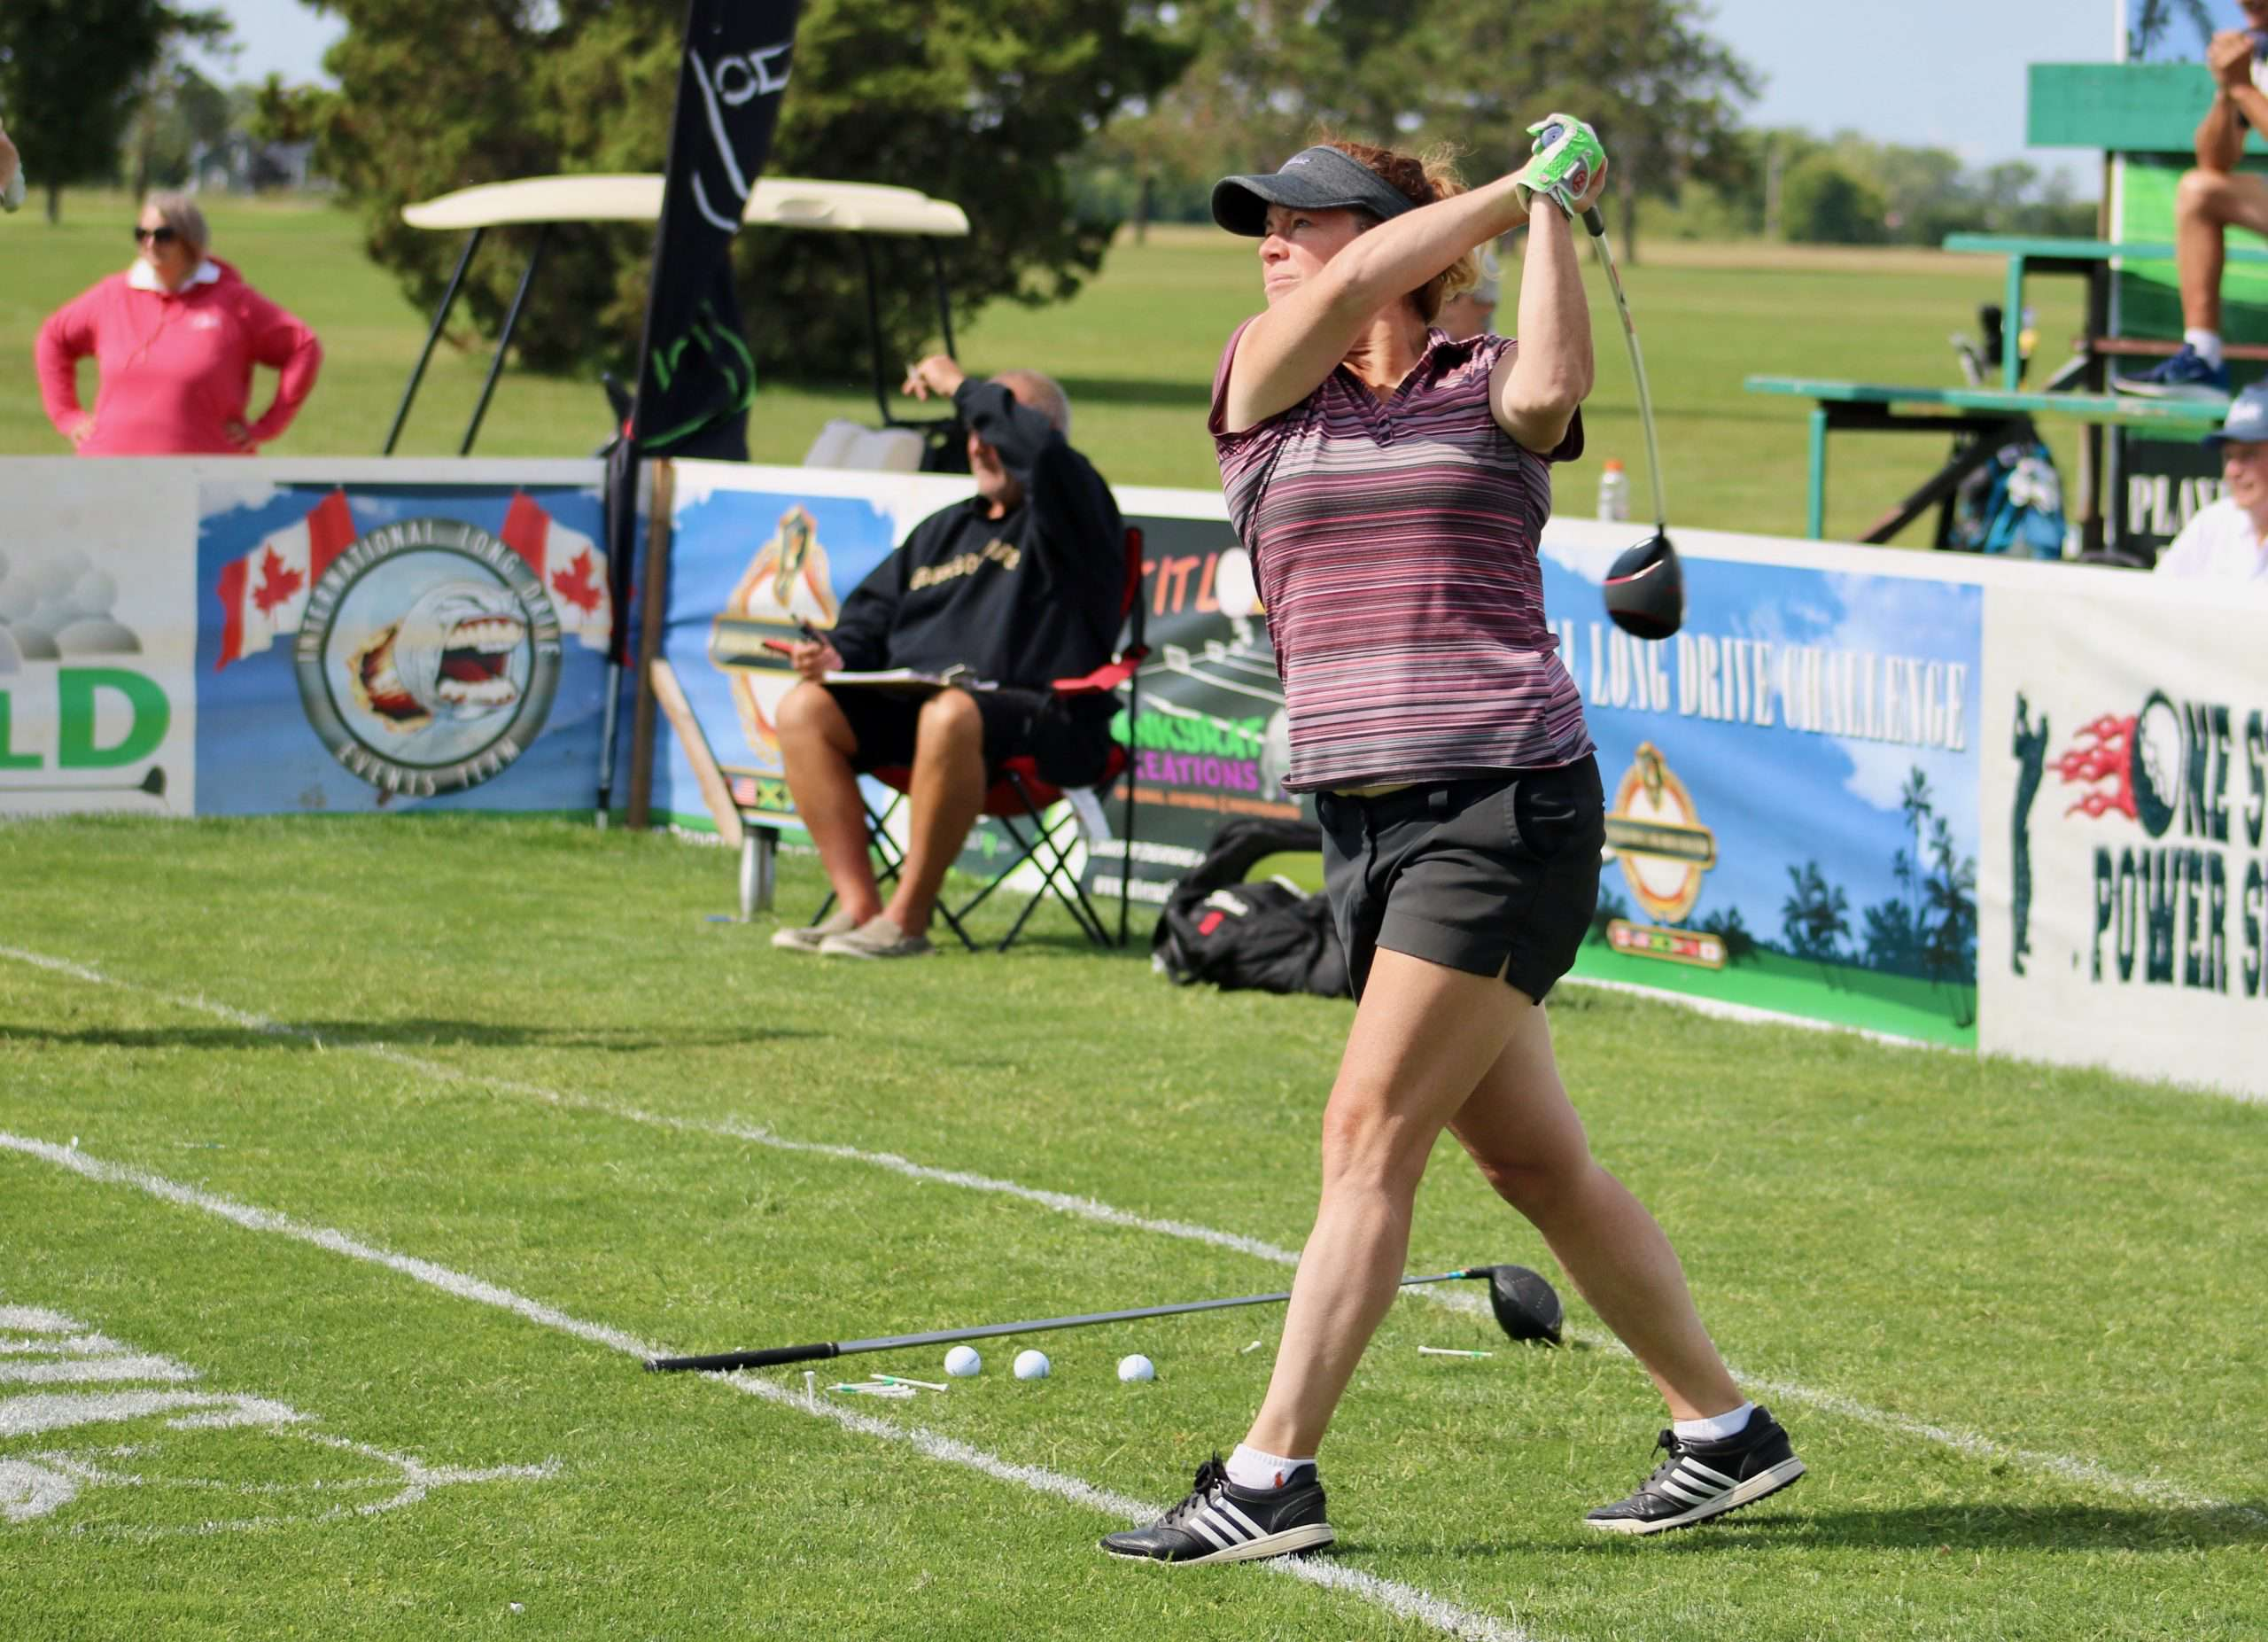 Long drive contests a passion for champion